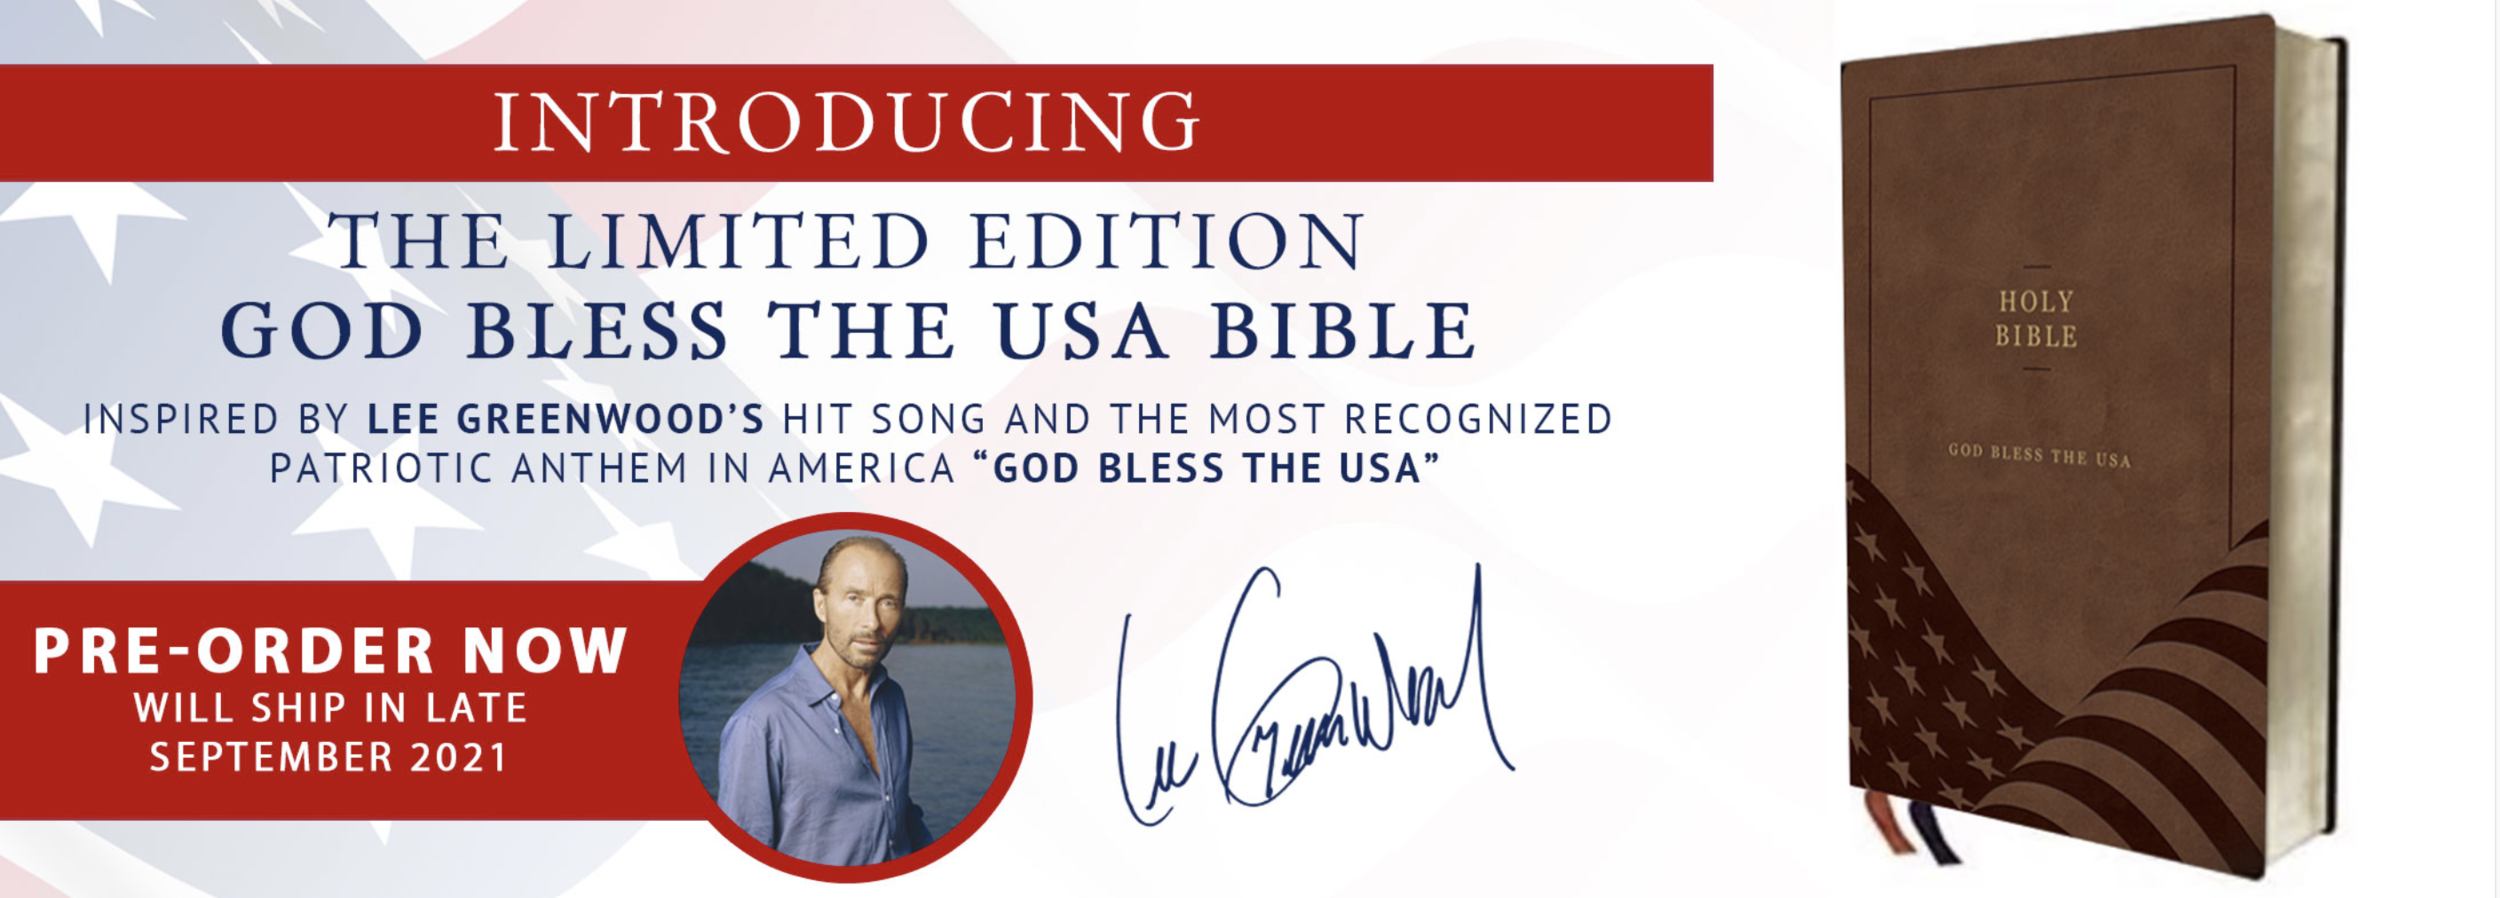 A screenshot of the God Bless the USA Bible website showing Lee Greenwood's endorsement.